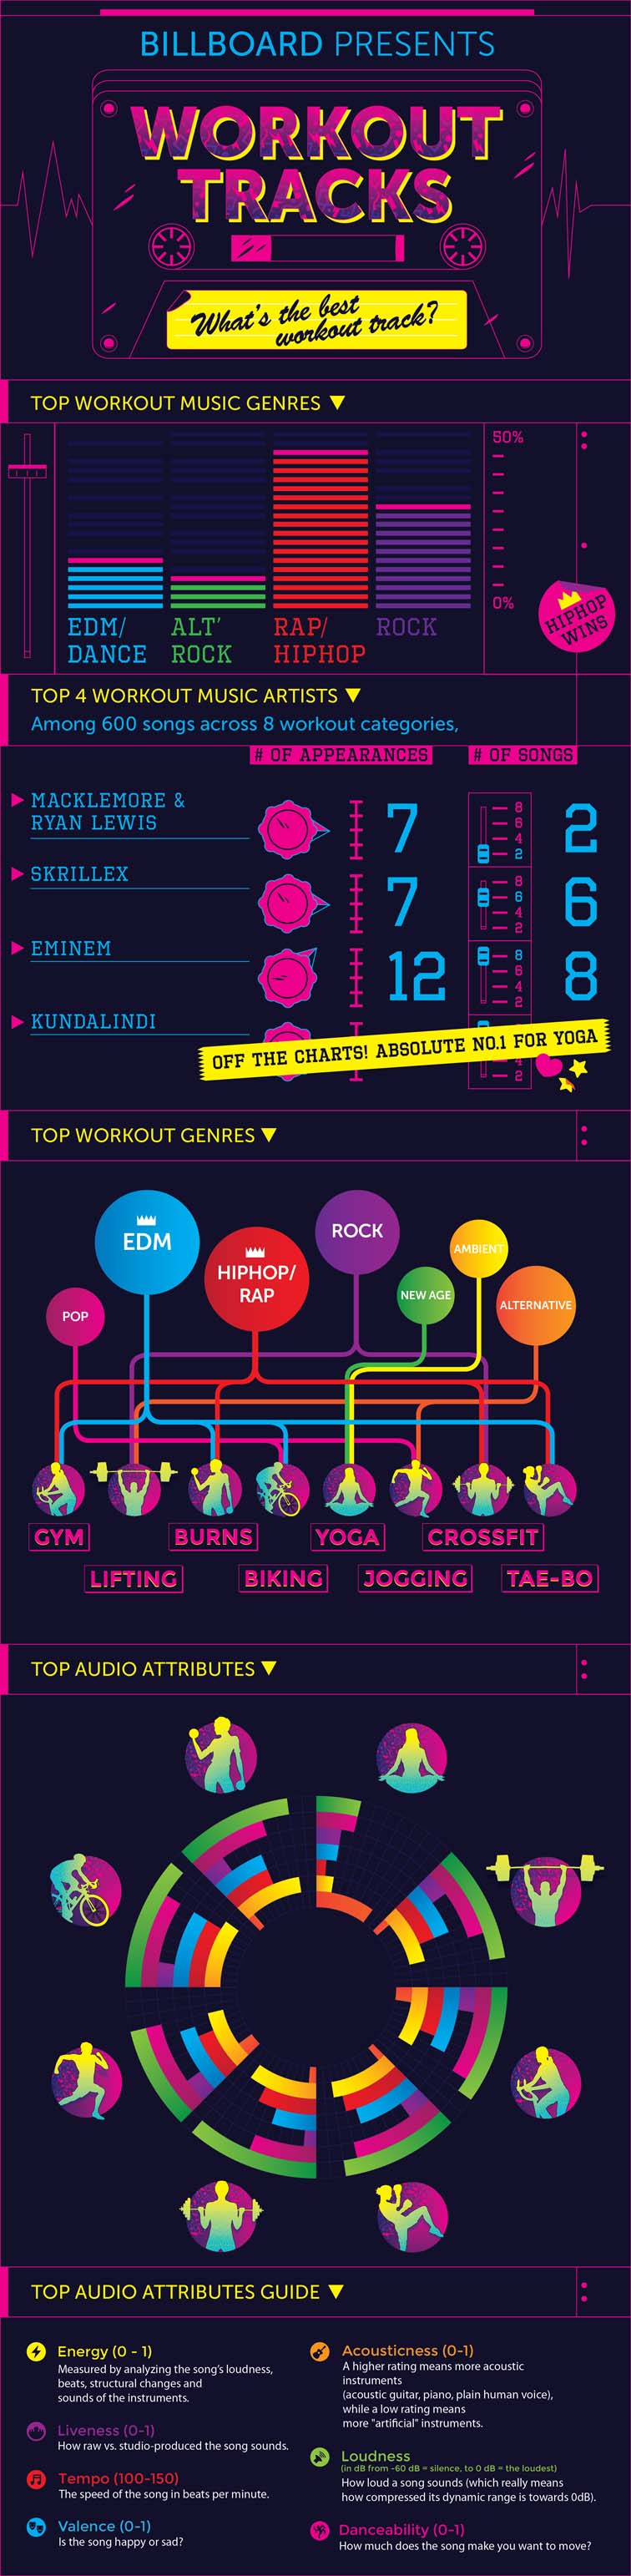 Exercise Playlist Infographic 5668